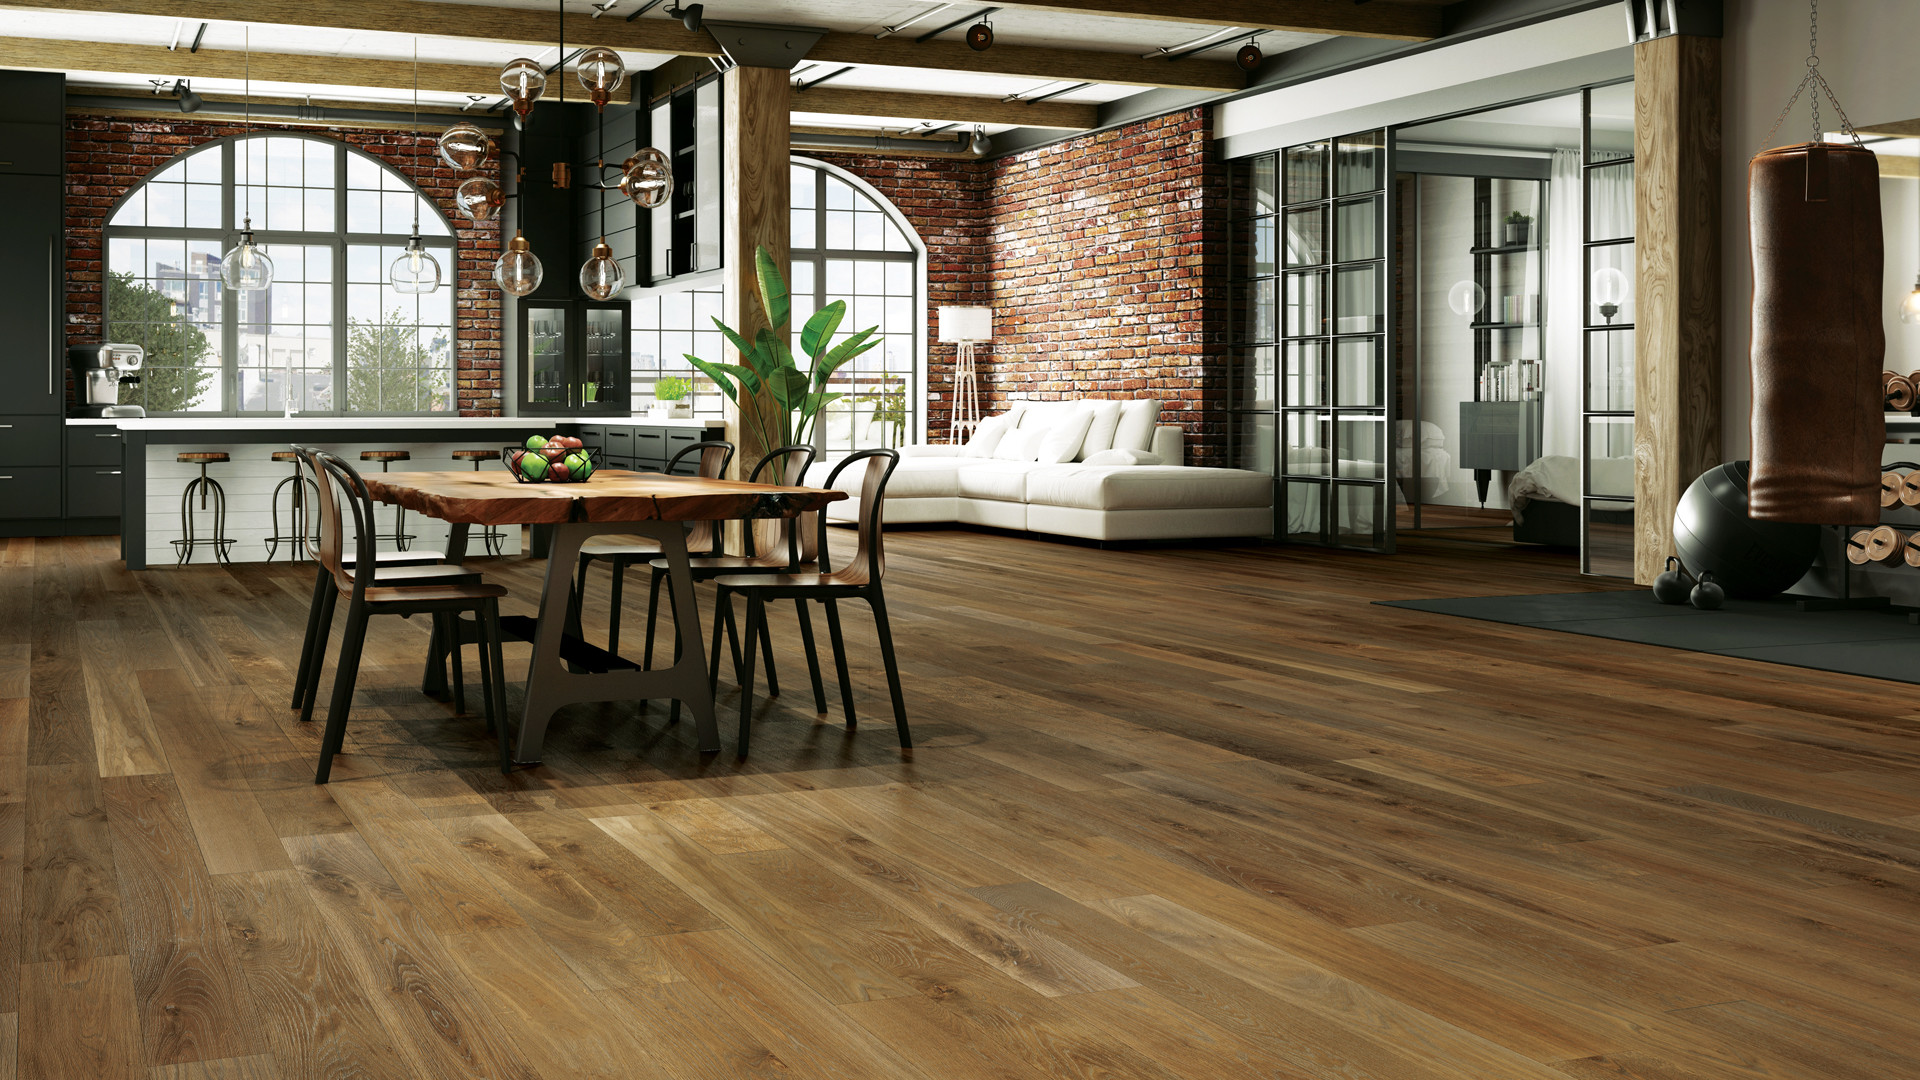 Hardwood Floor Spline Of 4 Latest Hardwood Flooring Trends Of 2018 Lauzon Flooring Regarding Combined with A Wire Brushed Texture and An Ultra Matte Sheen these New 7a½ Wide White Oak Hardwood Floors Will Definitely Add Character to Your Home